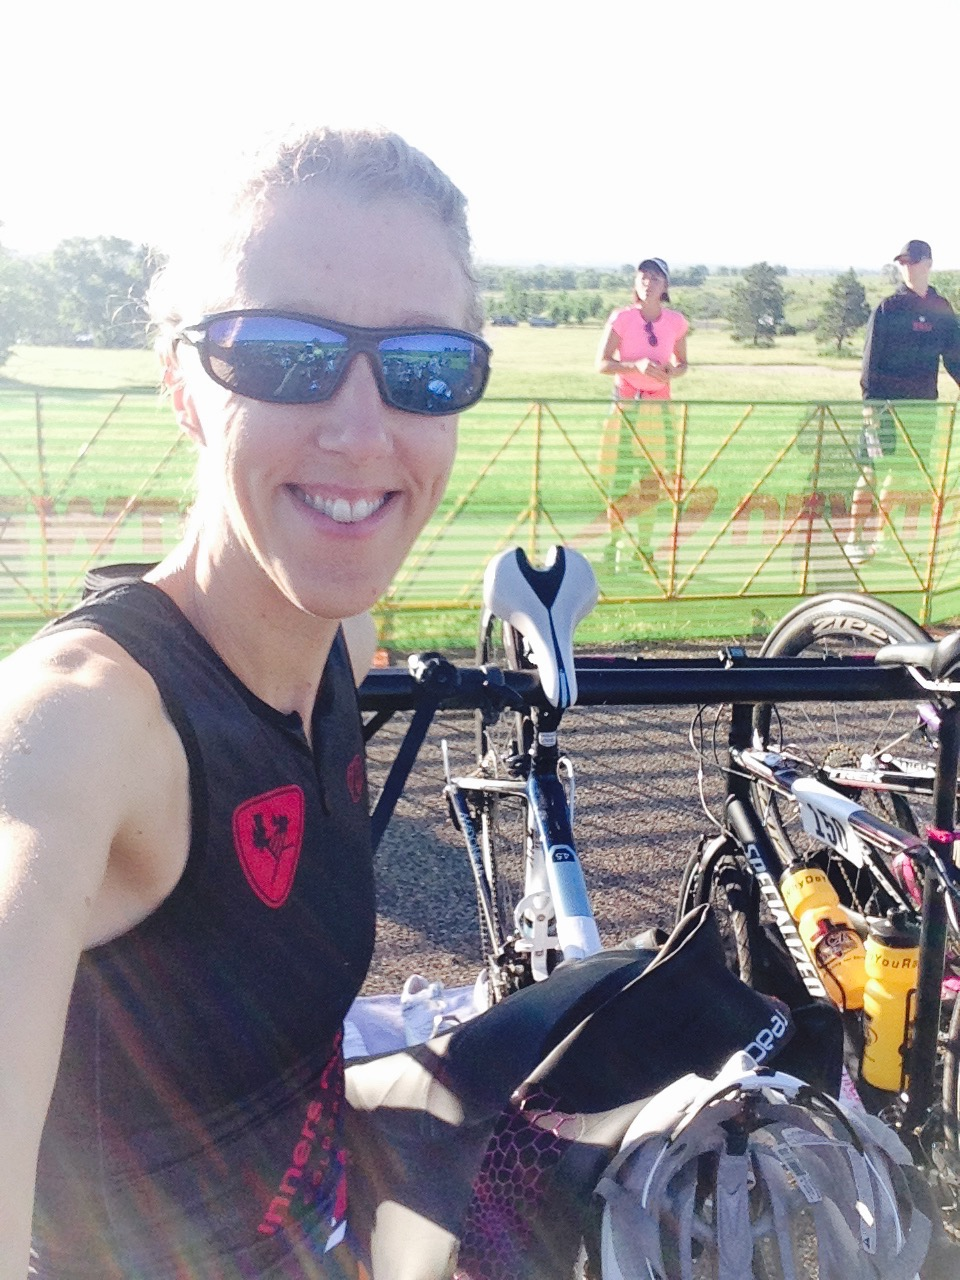 Getting ready to race a triathlon